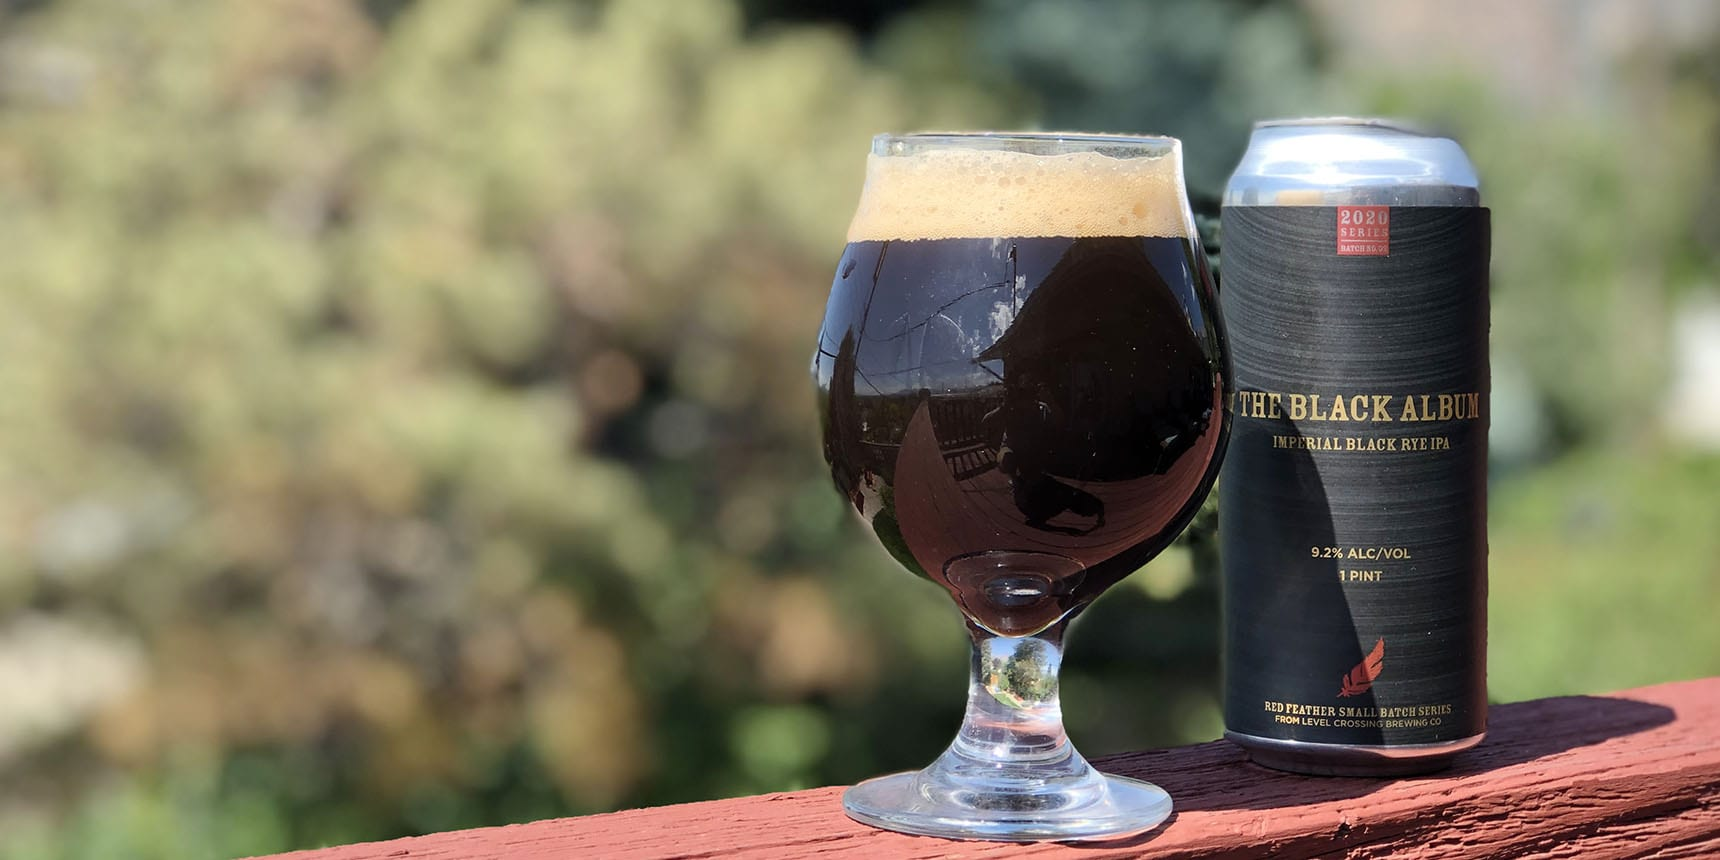 The Black Album - Level Crossing Brewing - Red Feather Small-Batch Series